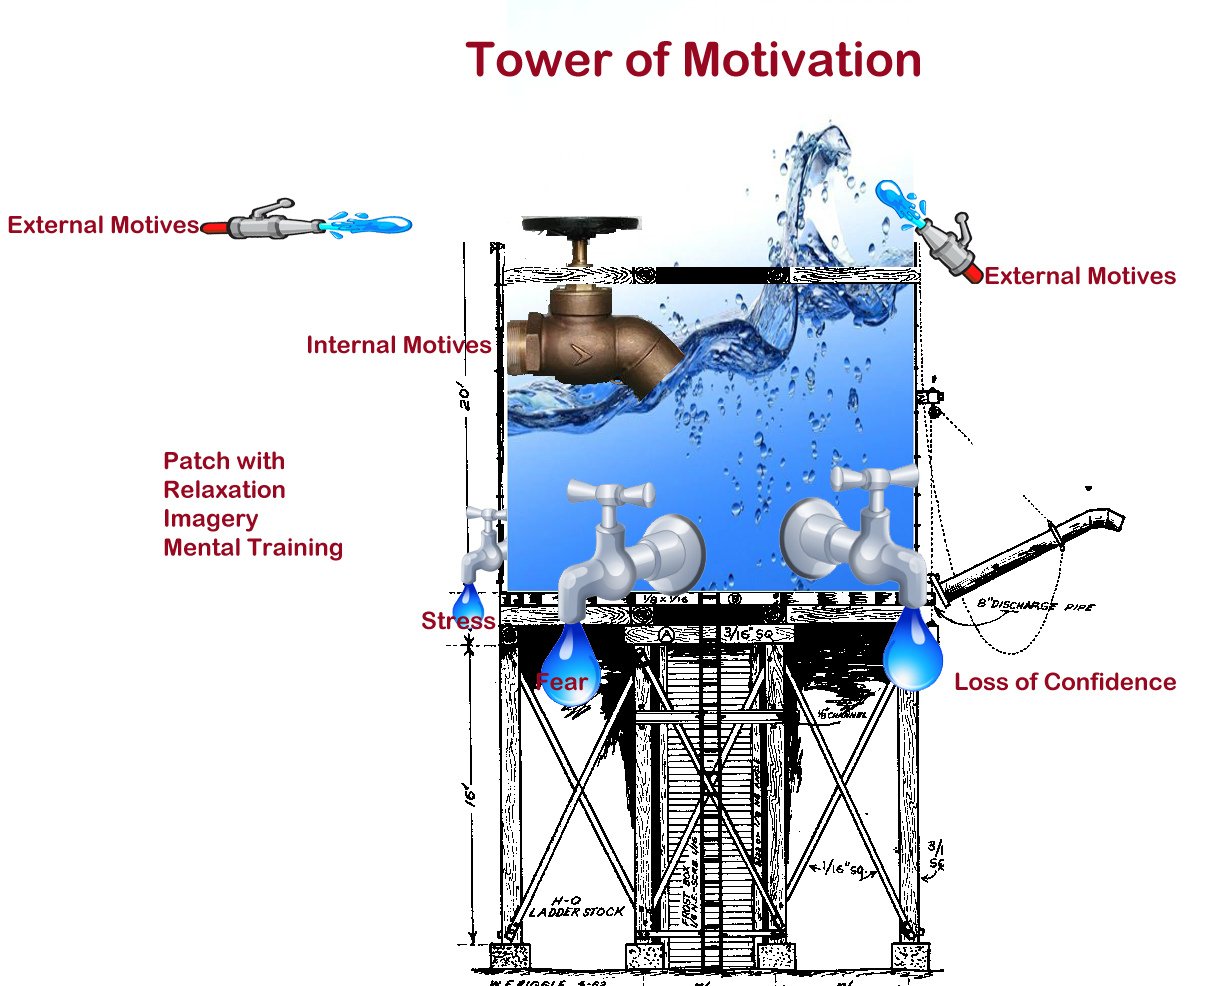 The Water Tower Motivation Analogy